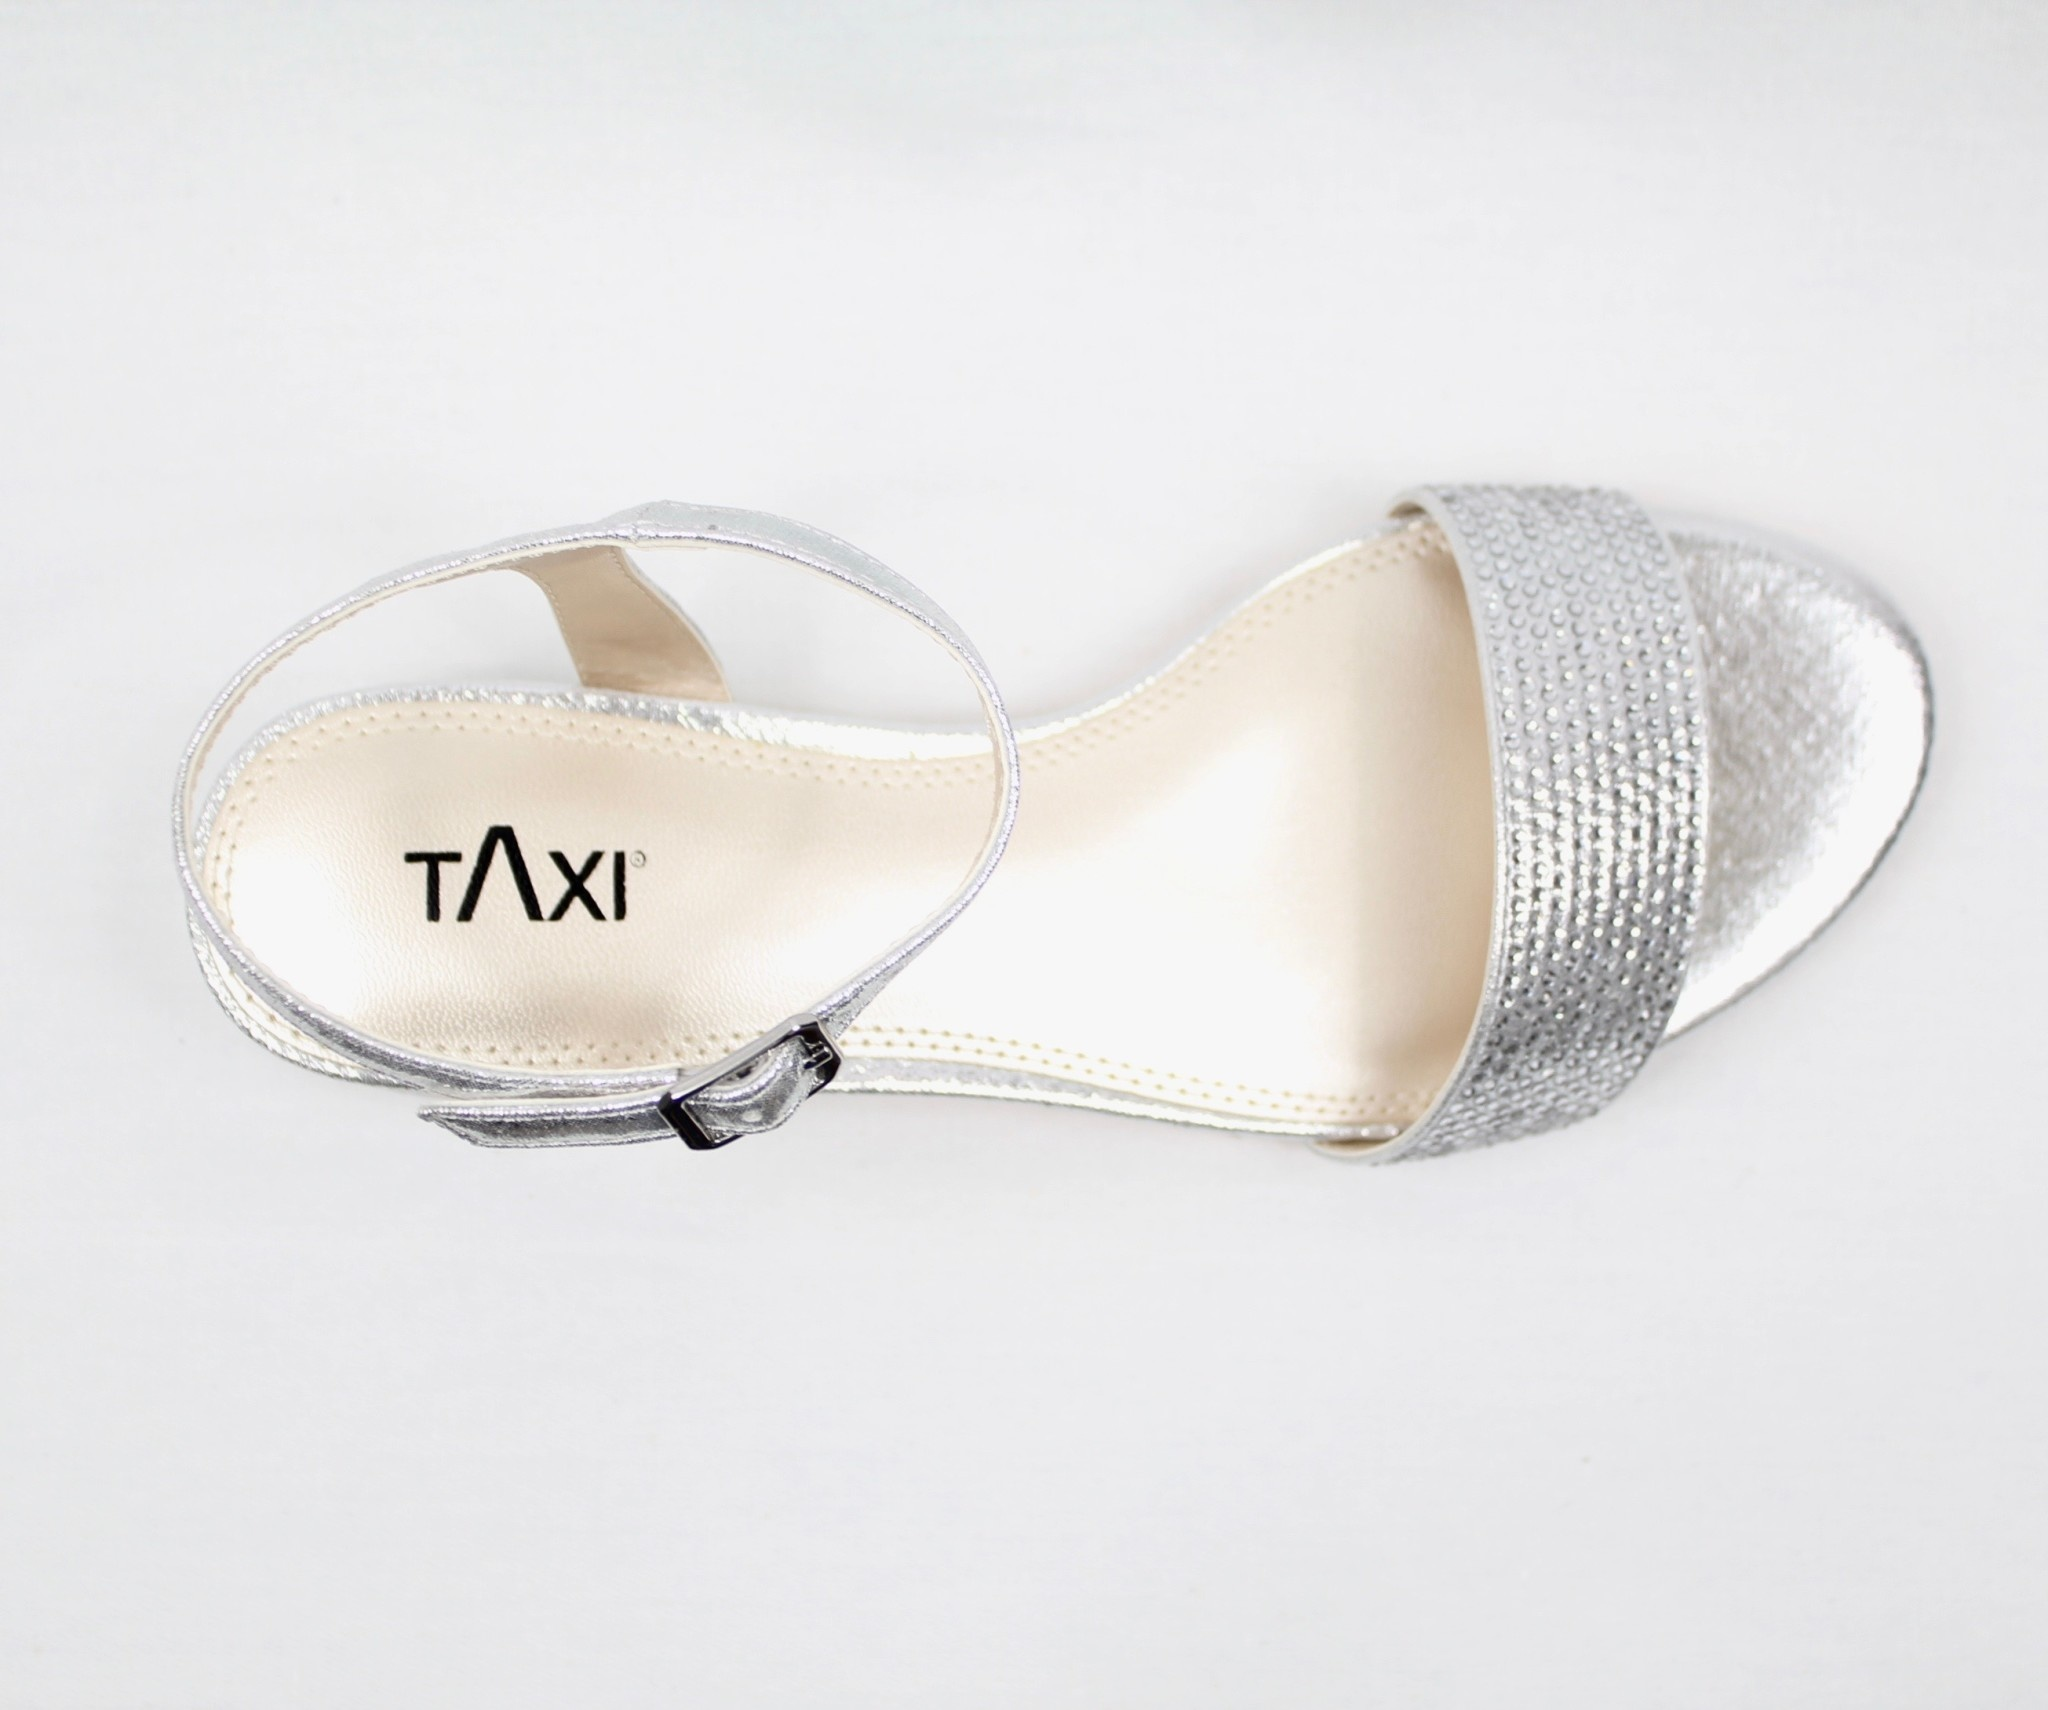 """TAXI TAXI """"ANGELA"""" Ankle Strap Sandal"""